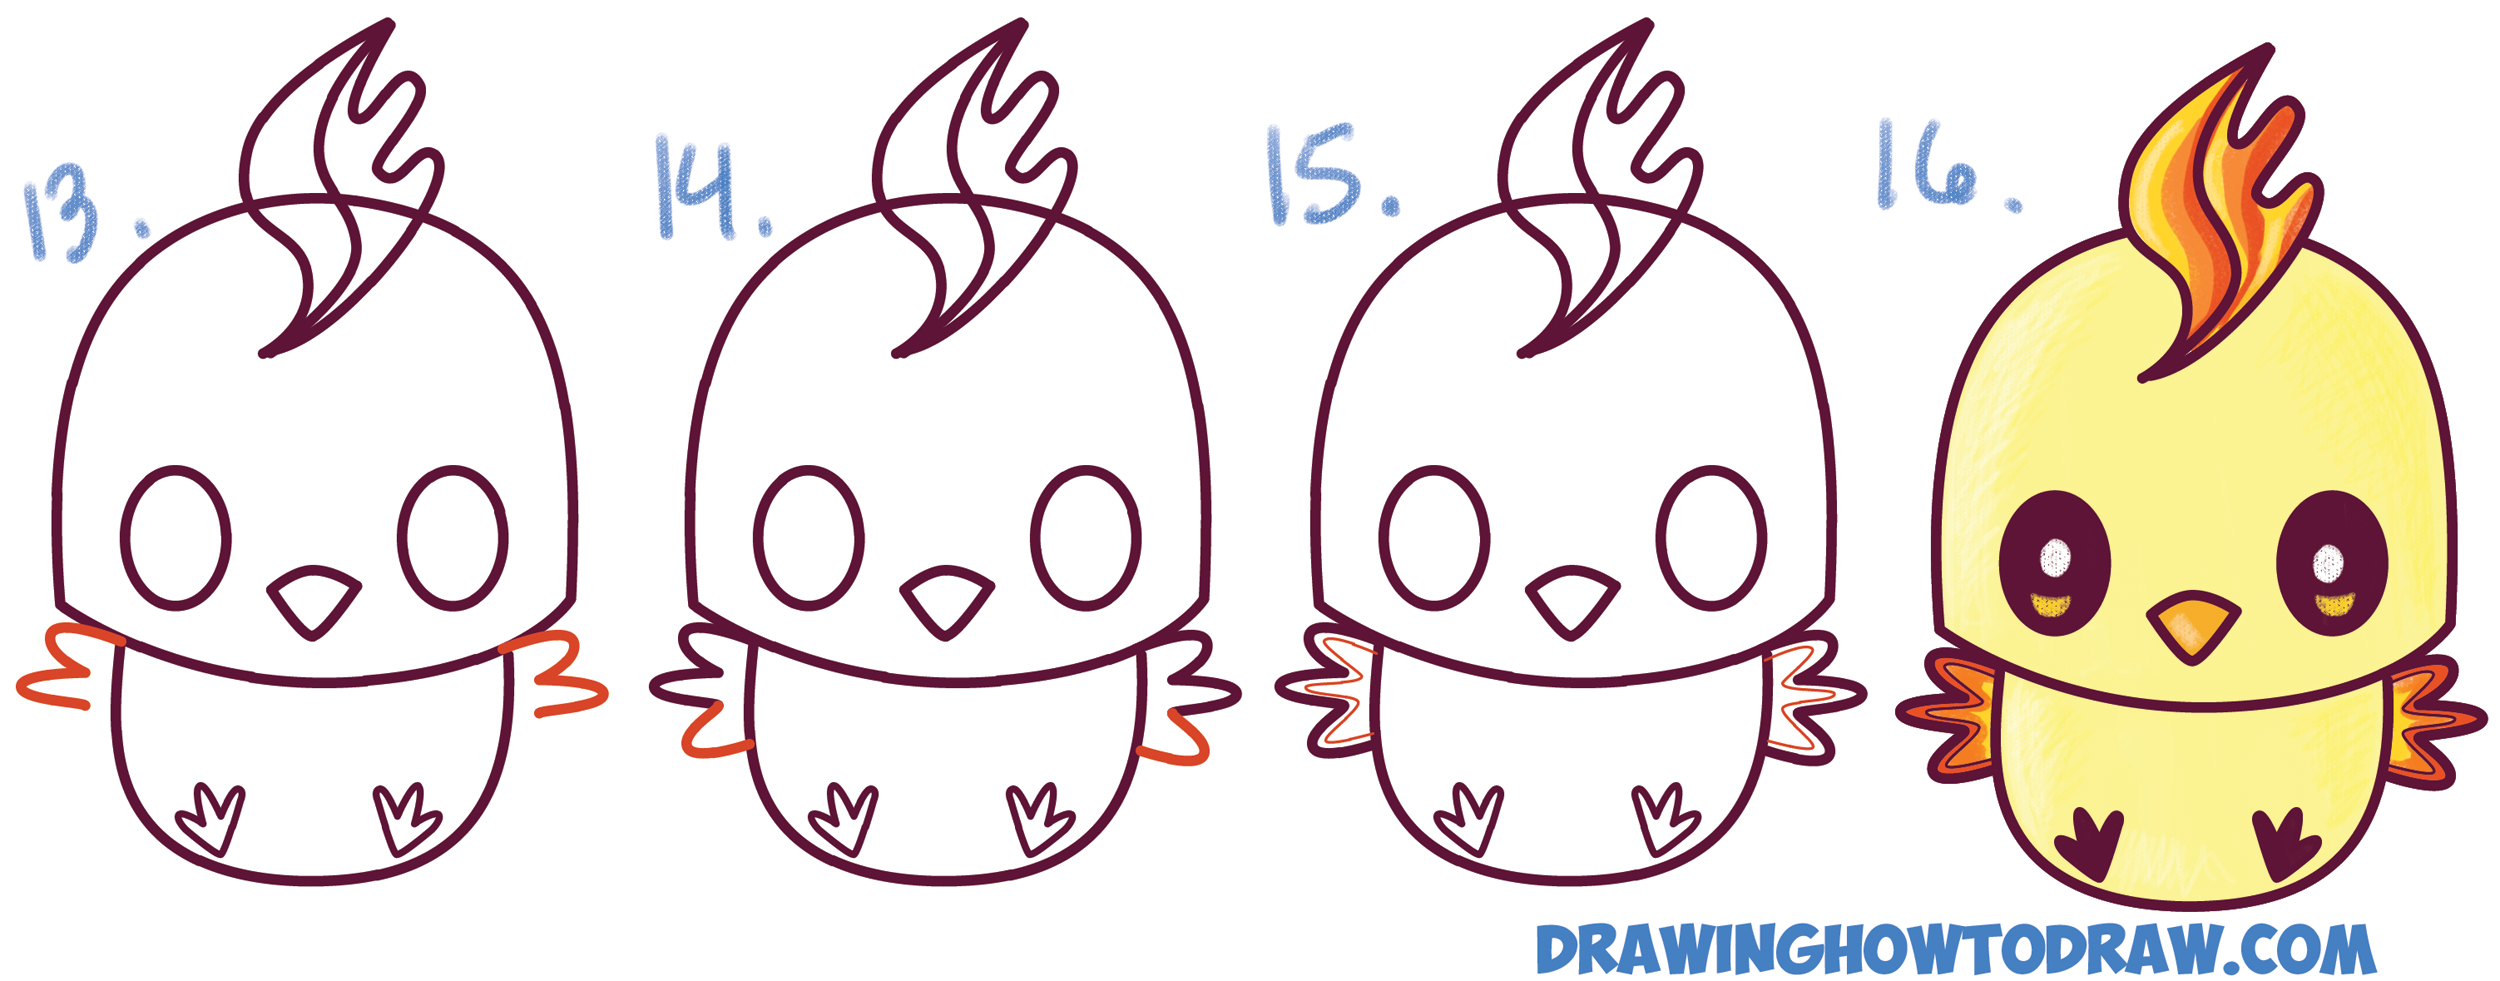 Learn How to Draw Cute / Kawaii / Chibi Moltres from Pokemon in Simple Steps Drawing Lesson for Children and Beginners